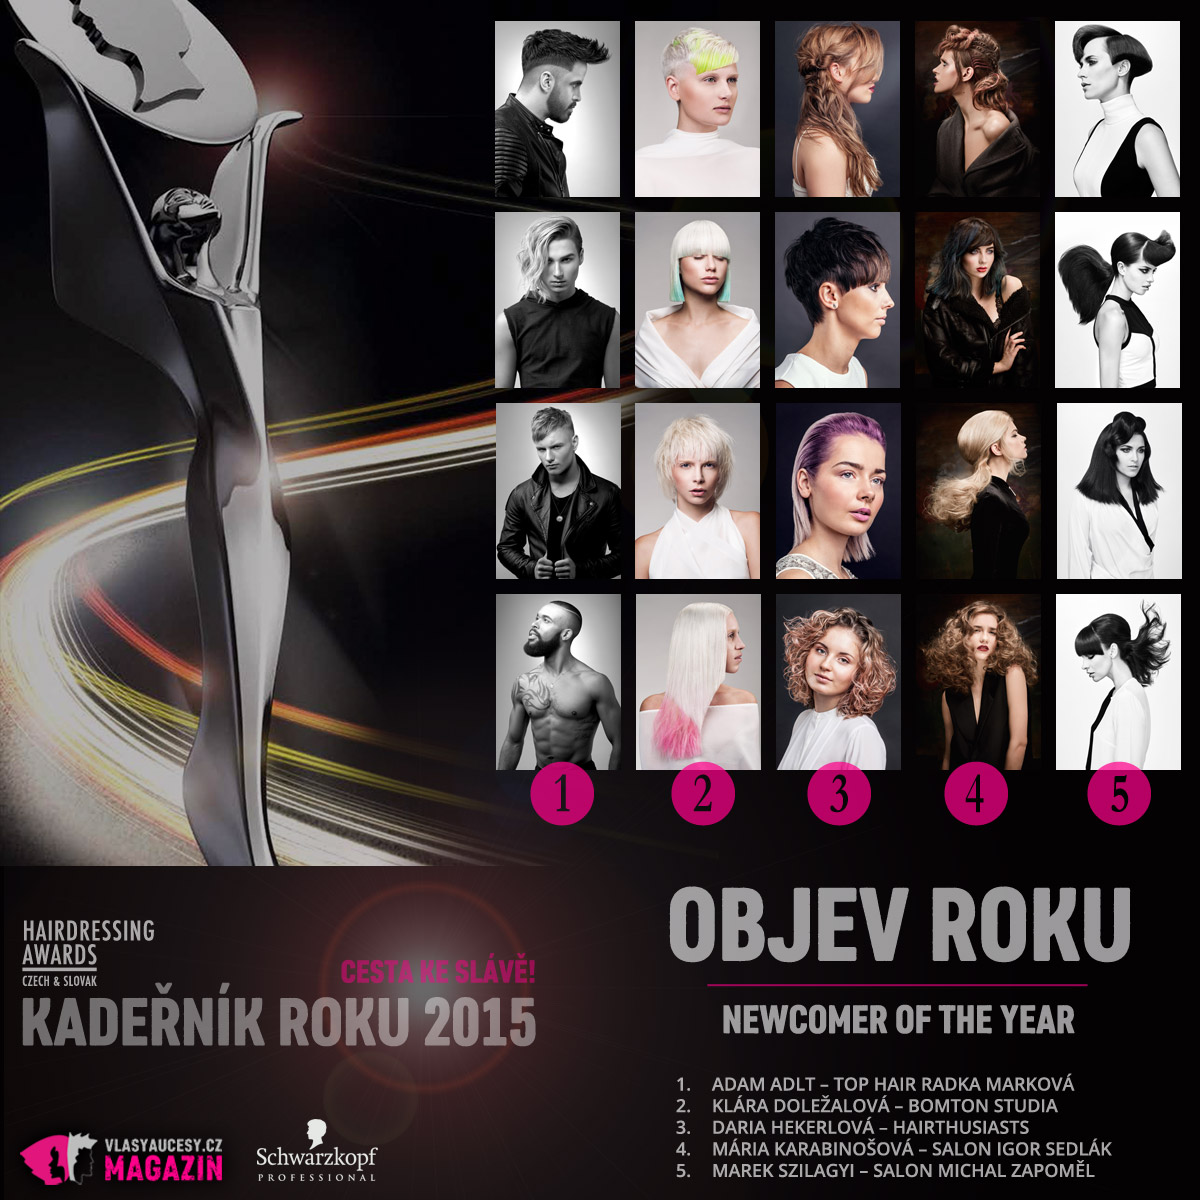 Czech&Slovak Hairdressing Awards 2015 – kategorie Objev roku / Newcomer of the Year (Adam Adlt – Top hair Radka Marková, Klára Doležalová – Bomton Studia, Daria Hekerlová – Hairthusiasts, Mária Karabinošová – Salon Igor Sedlák, Marek Szilagyi – Salon Michal Zapoměl)